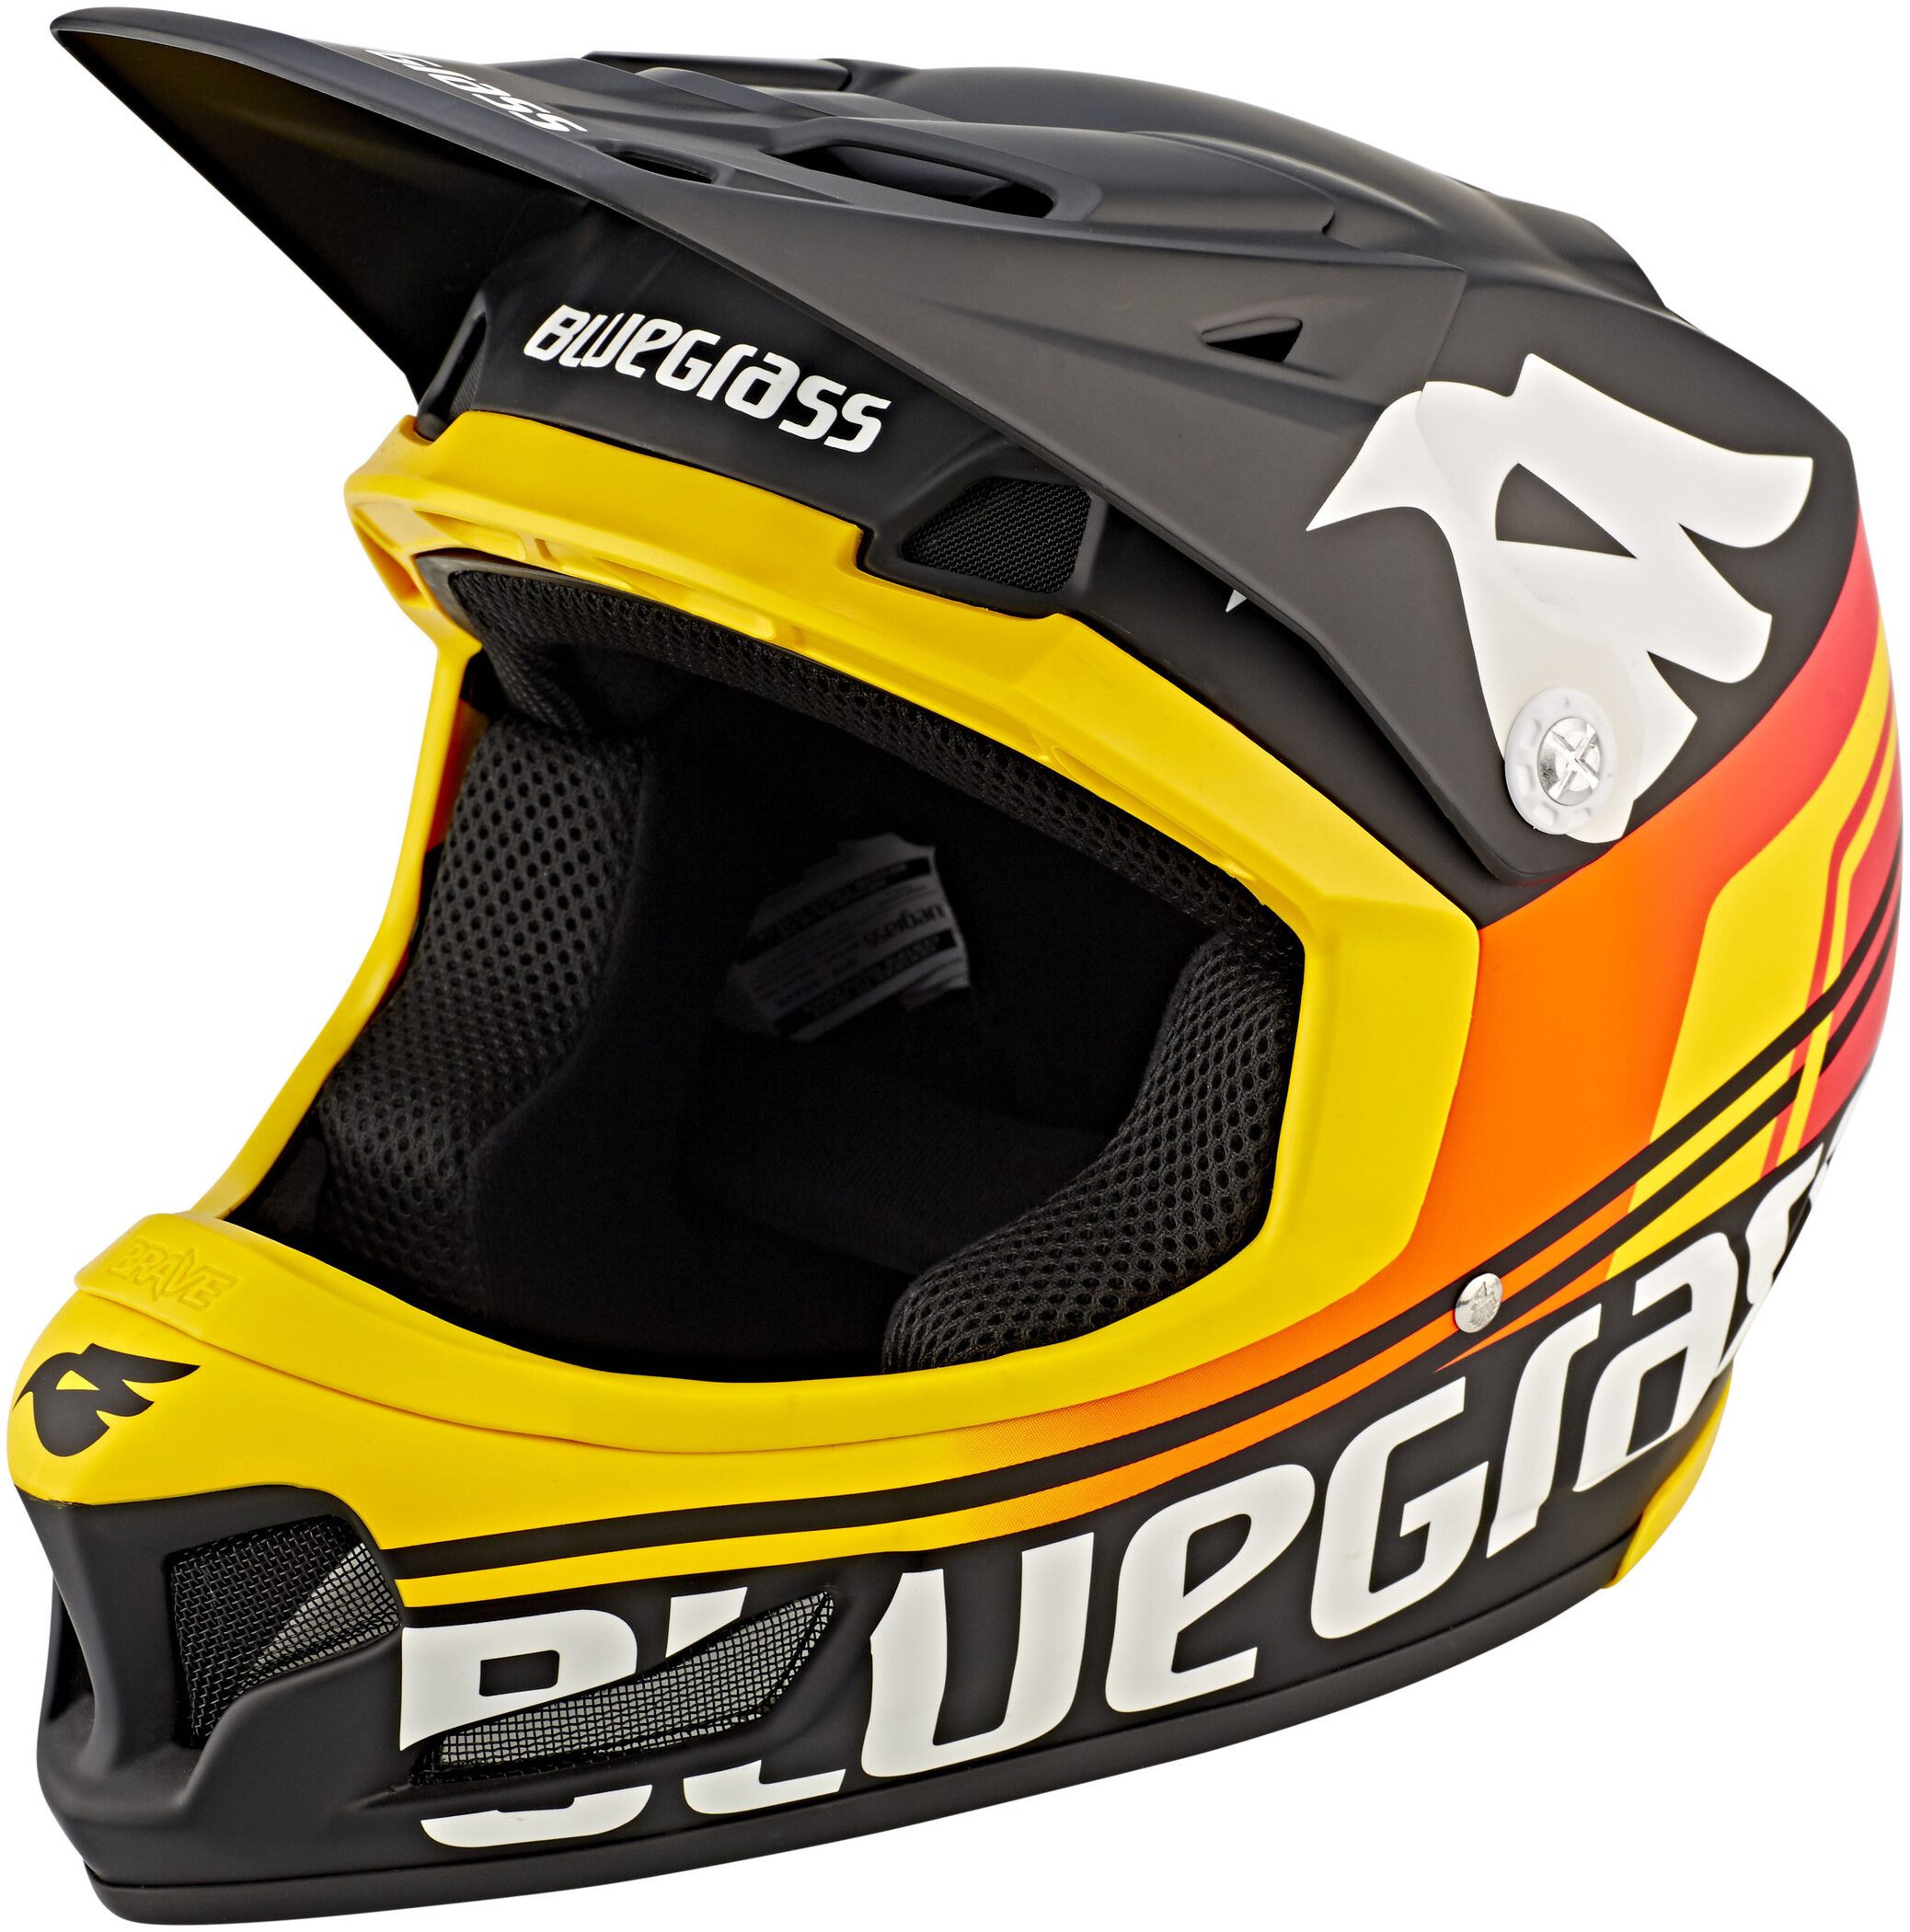 bluegrass Brave Cykelhjelm, matt black/orange/yellow (2019) | Helmets